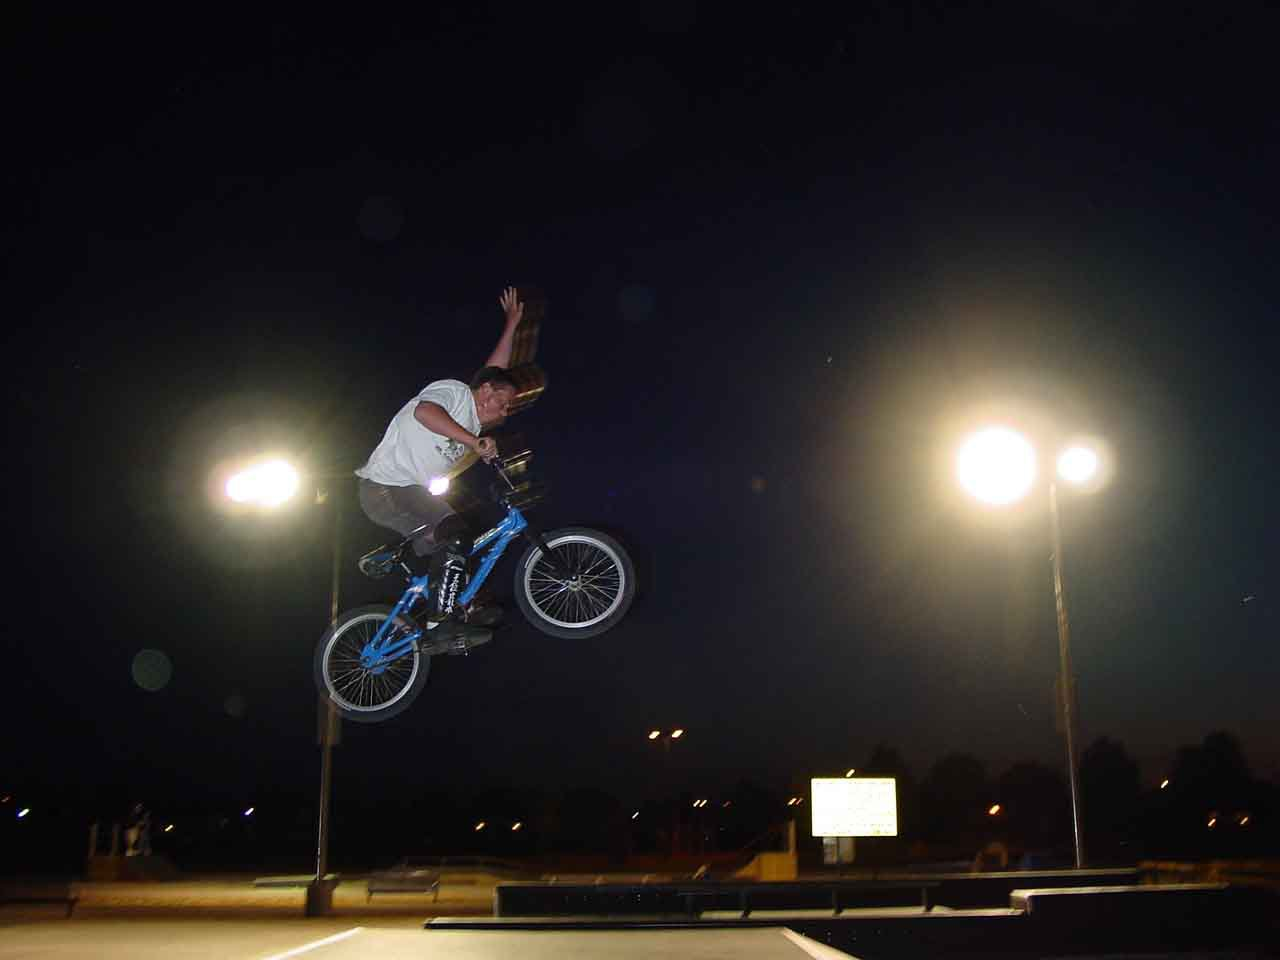 One Hander, One Footer